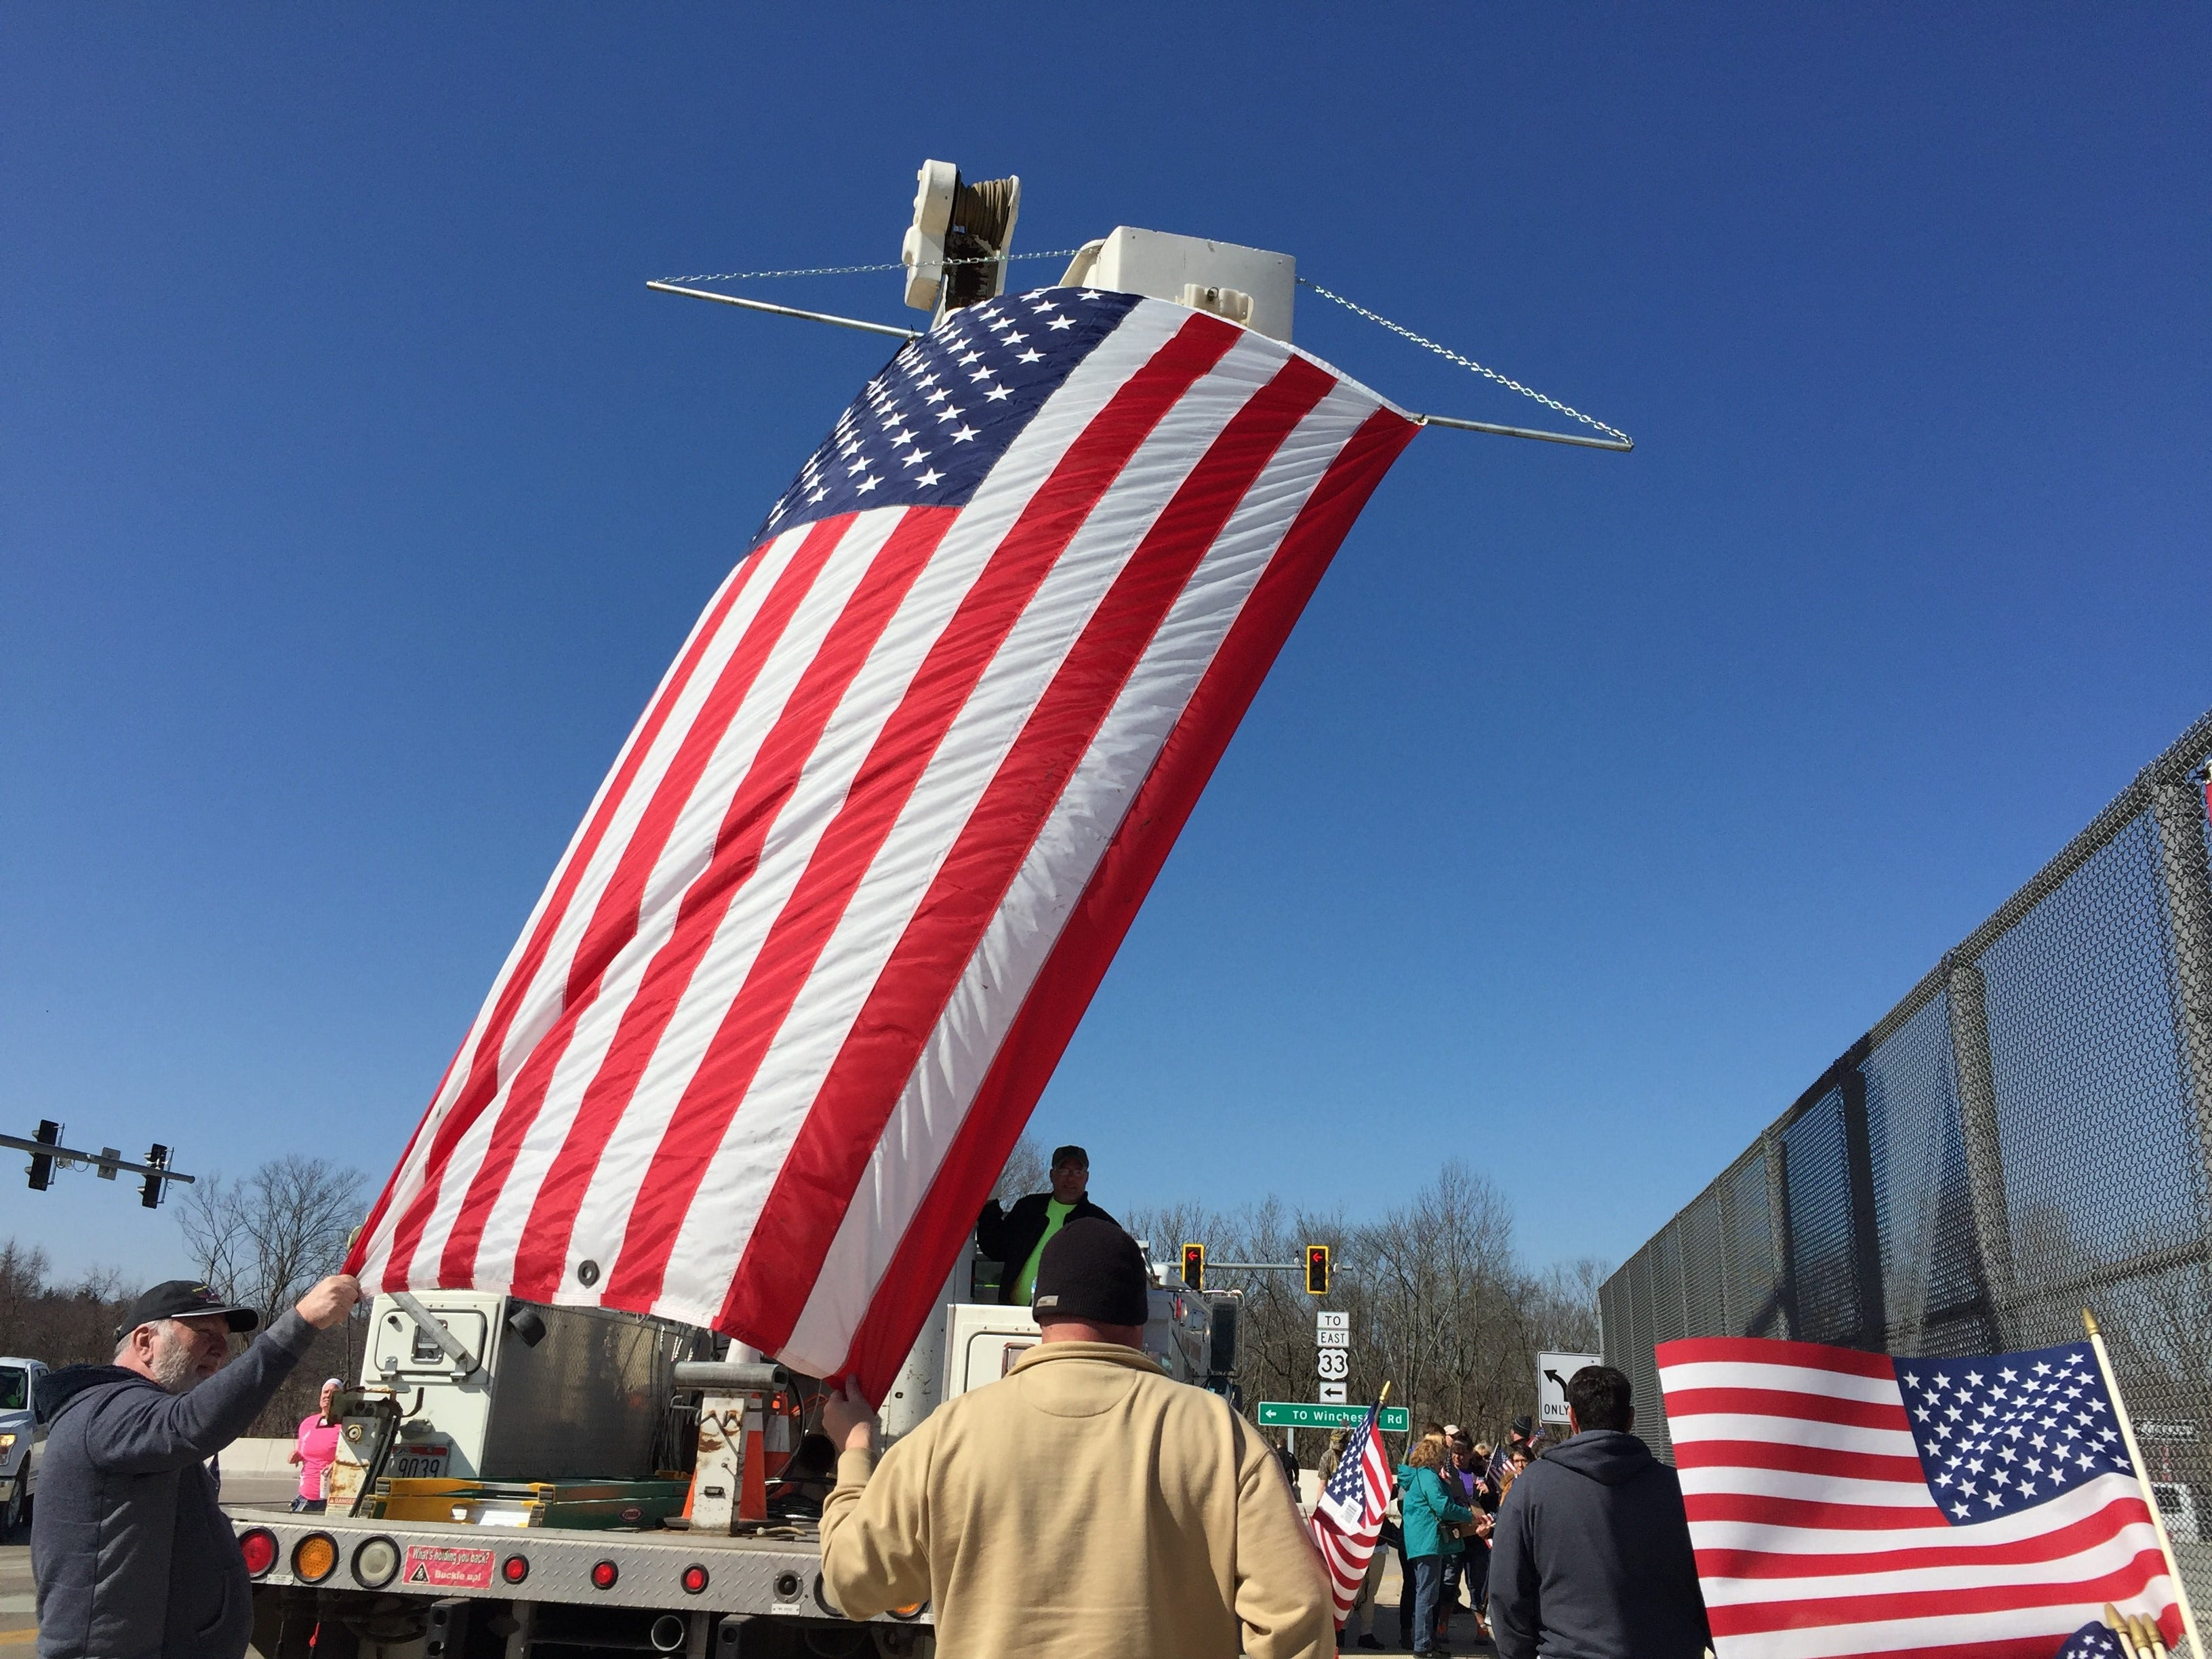 Over 100 people gather on the U.S. 33 overpass in Carroll, Wednesday for the U.S. Army Sgt. Joseph Collette procession.